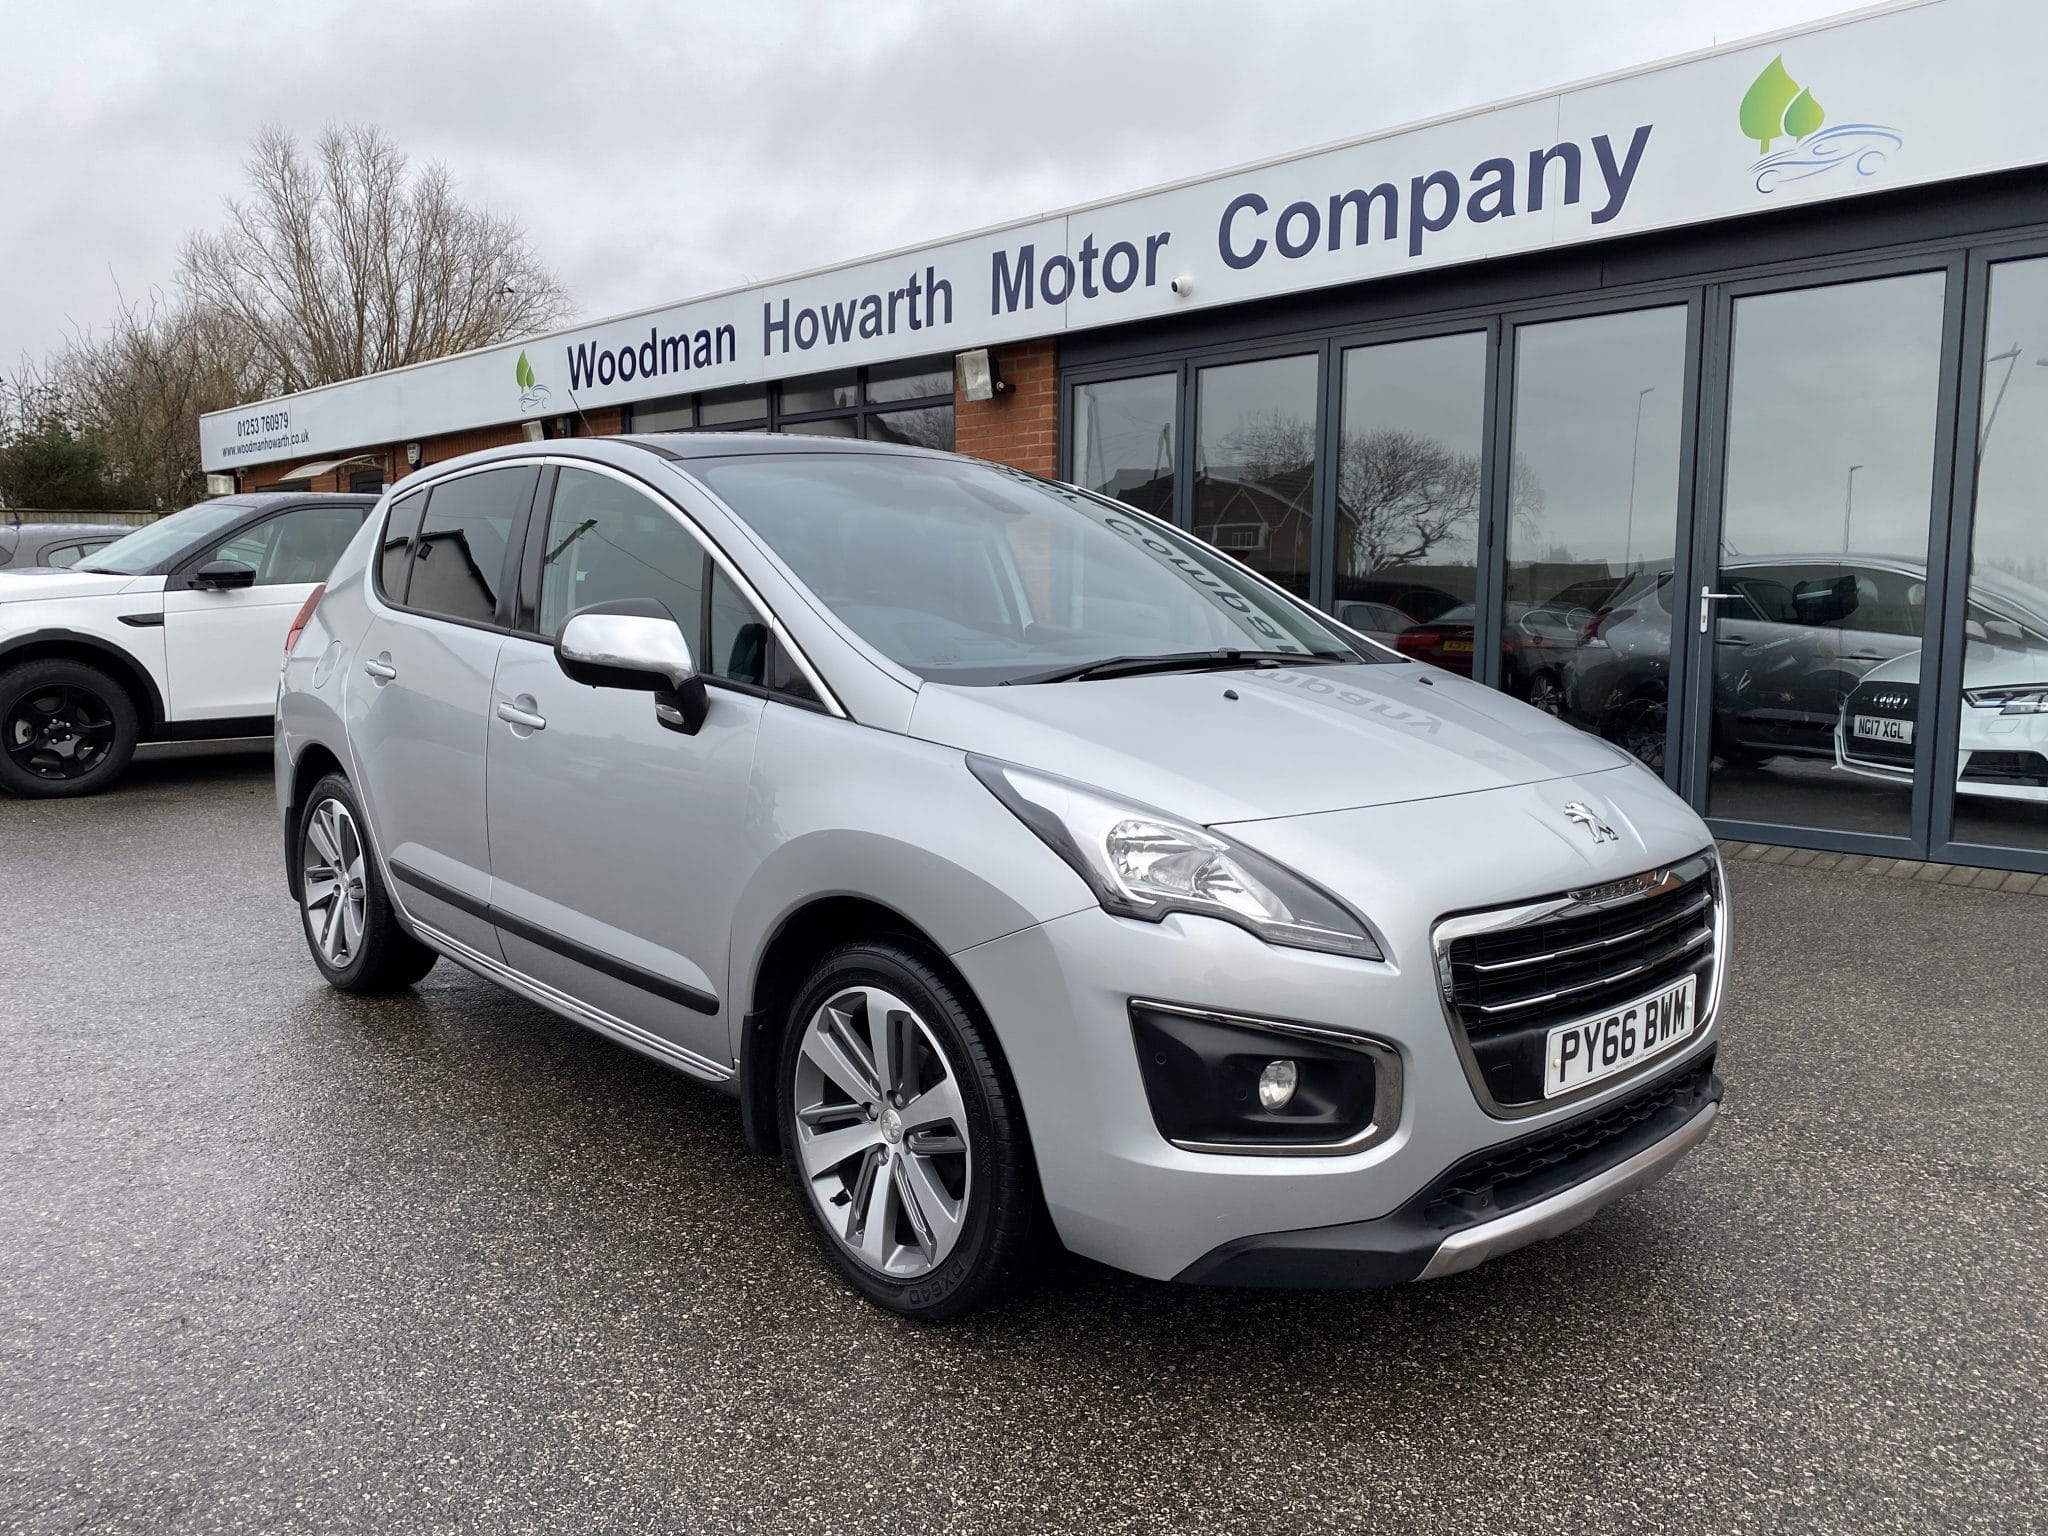 2016 66 PEUGEOT 3008 CROSSOVER 1.6HDI ALLURE 5 DR 120 BHP MANUAL FSH Pan Roof Nav HUD Bluetooth Reverse Cam Ex Value